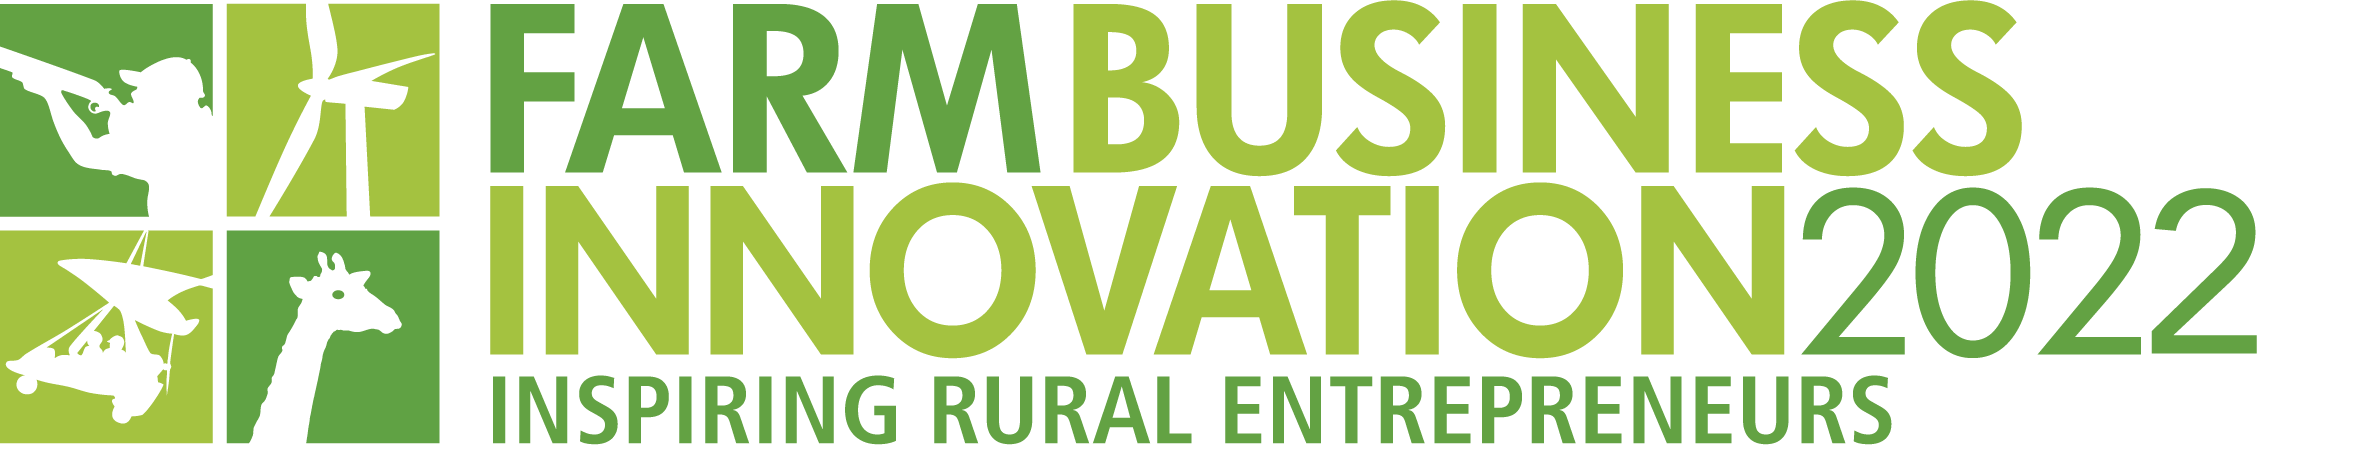 Farm Business Innovation